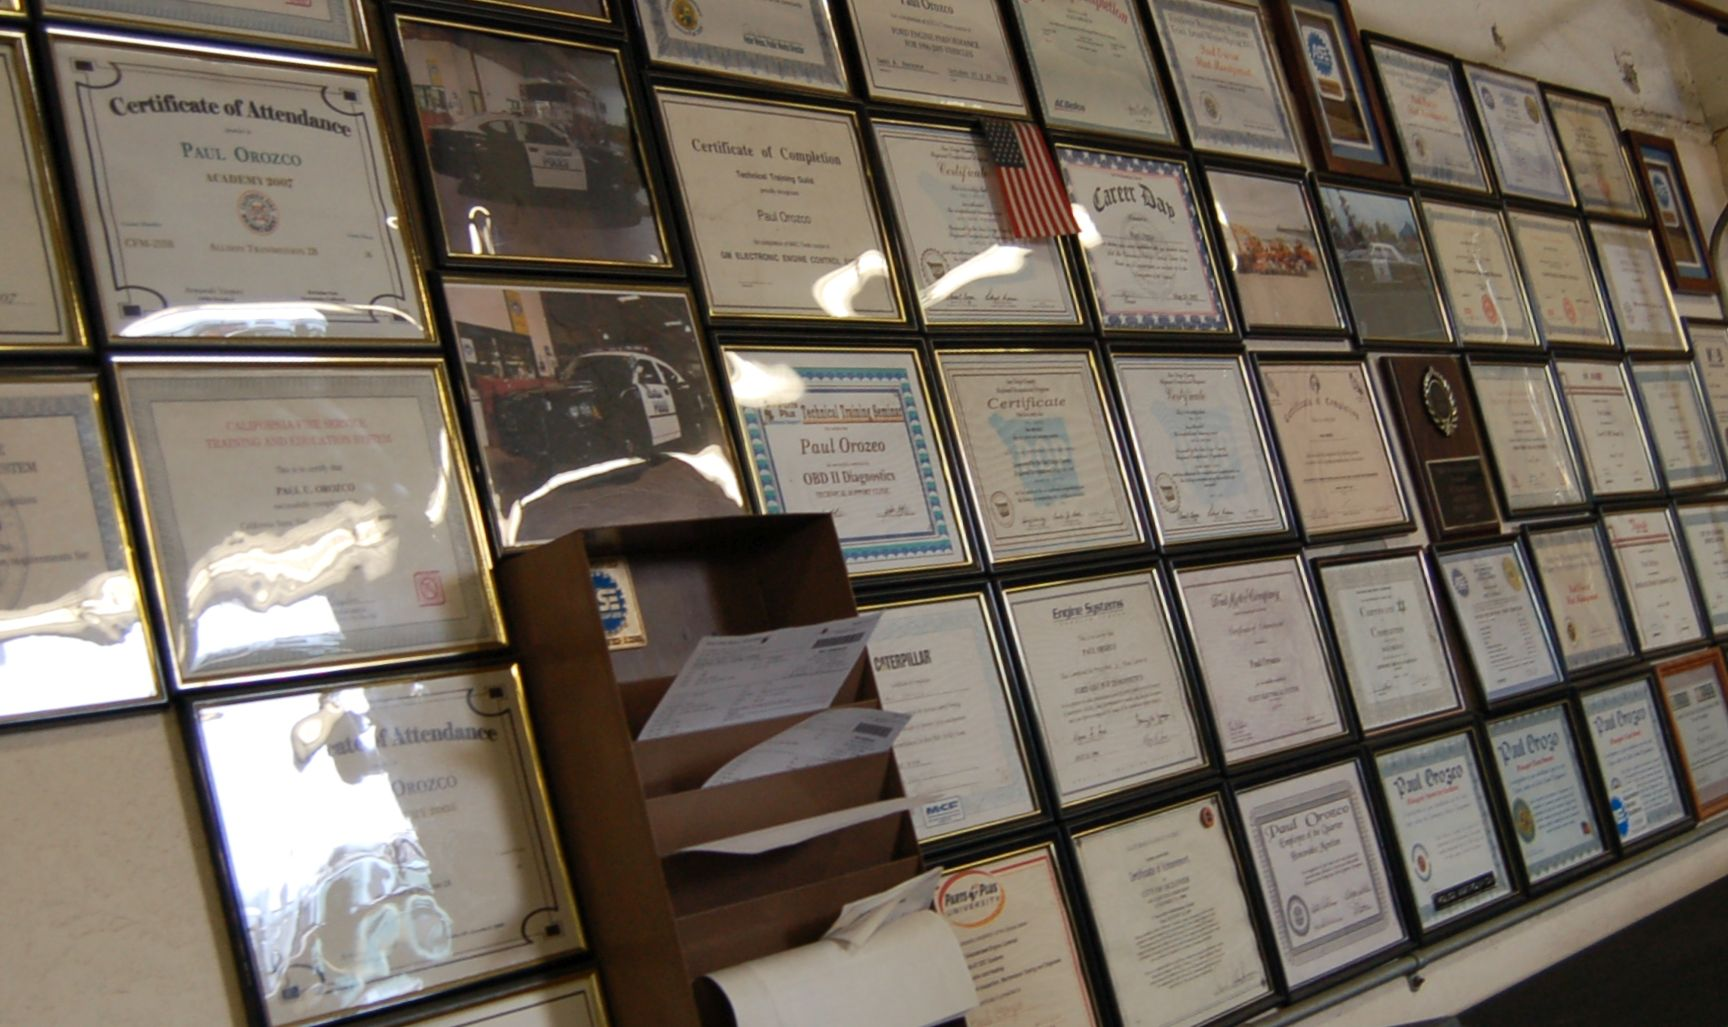 Using Awards to Motivate Staff